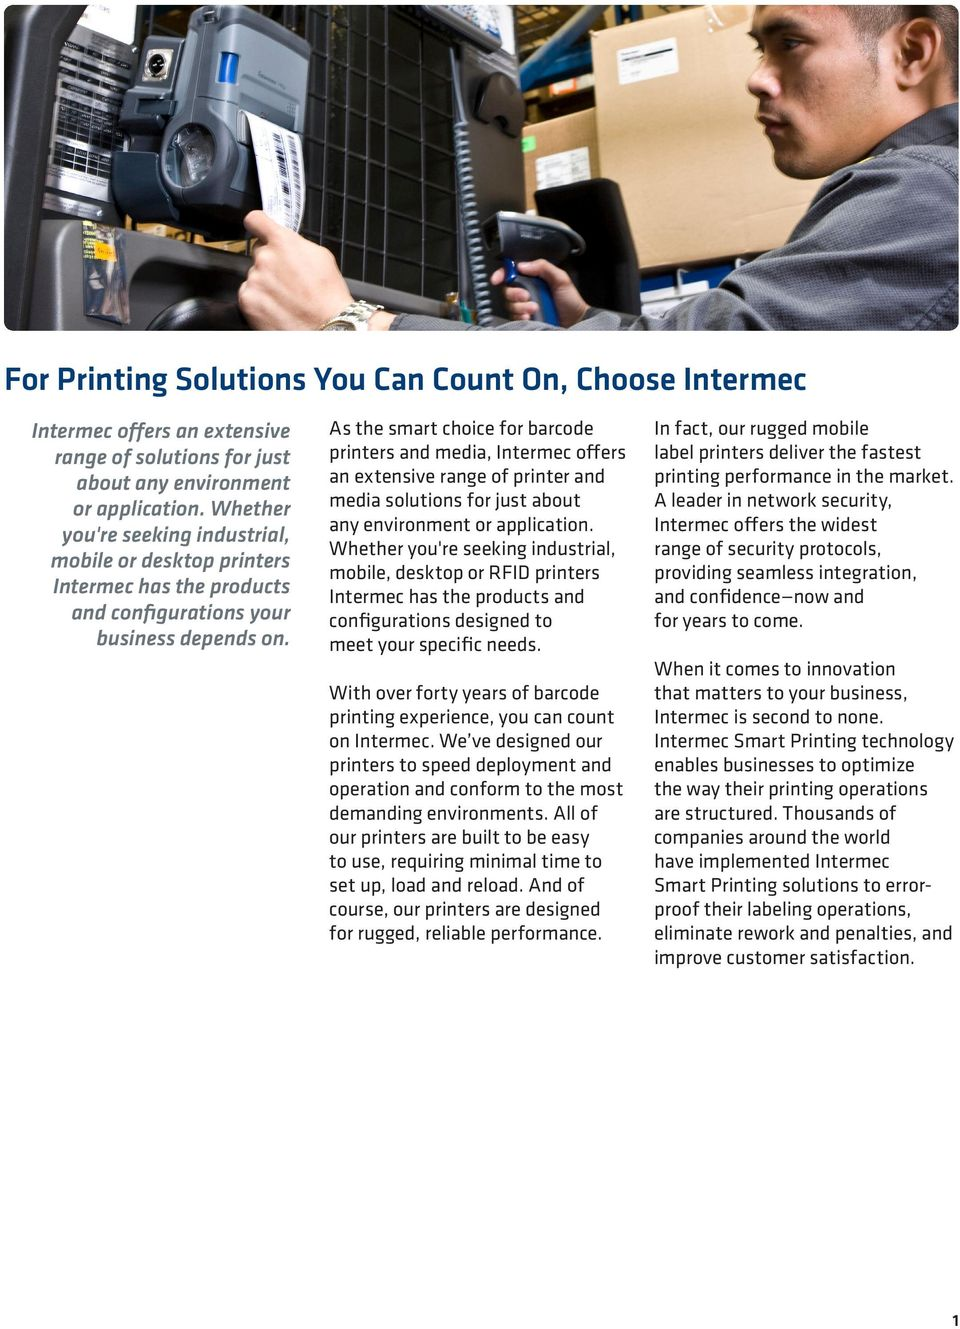 As the smart choice for barcode printers and media, Intermec offers an extensive range of printer and media solutions for just about any environment or application.